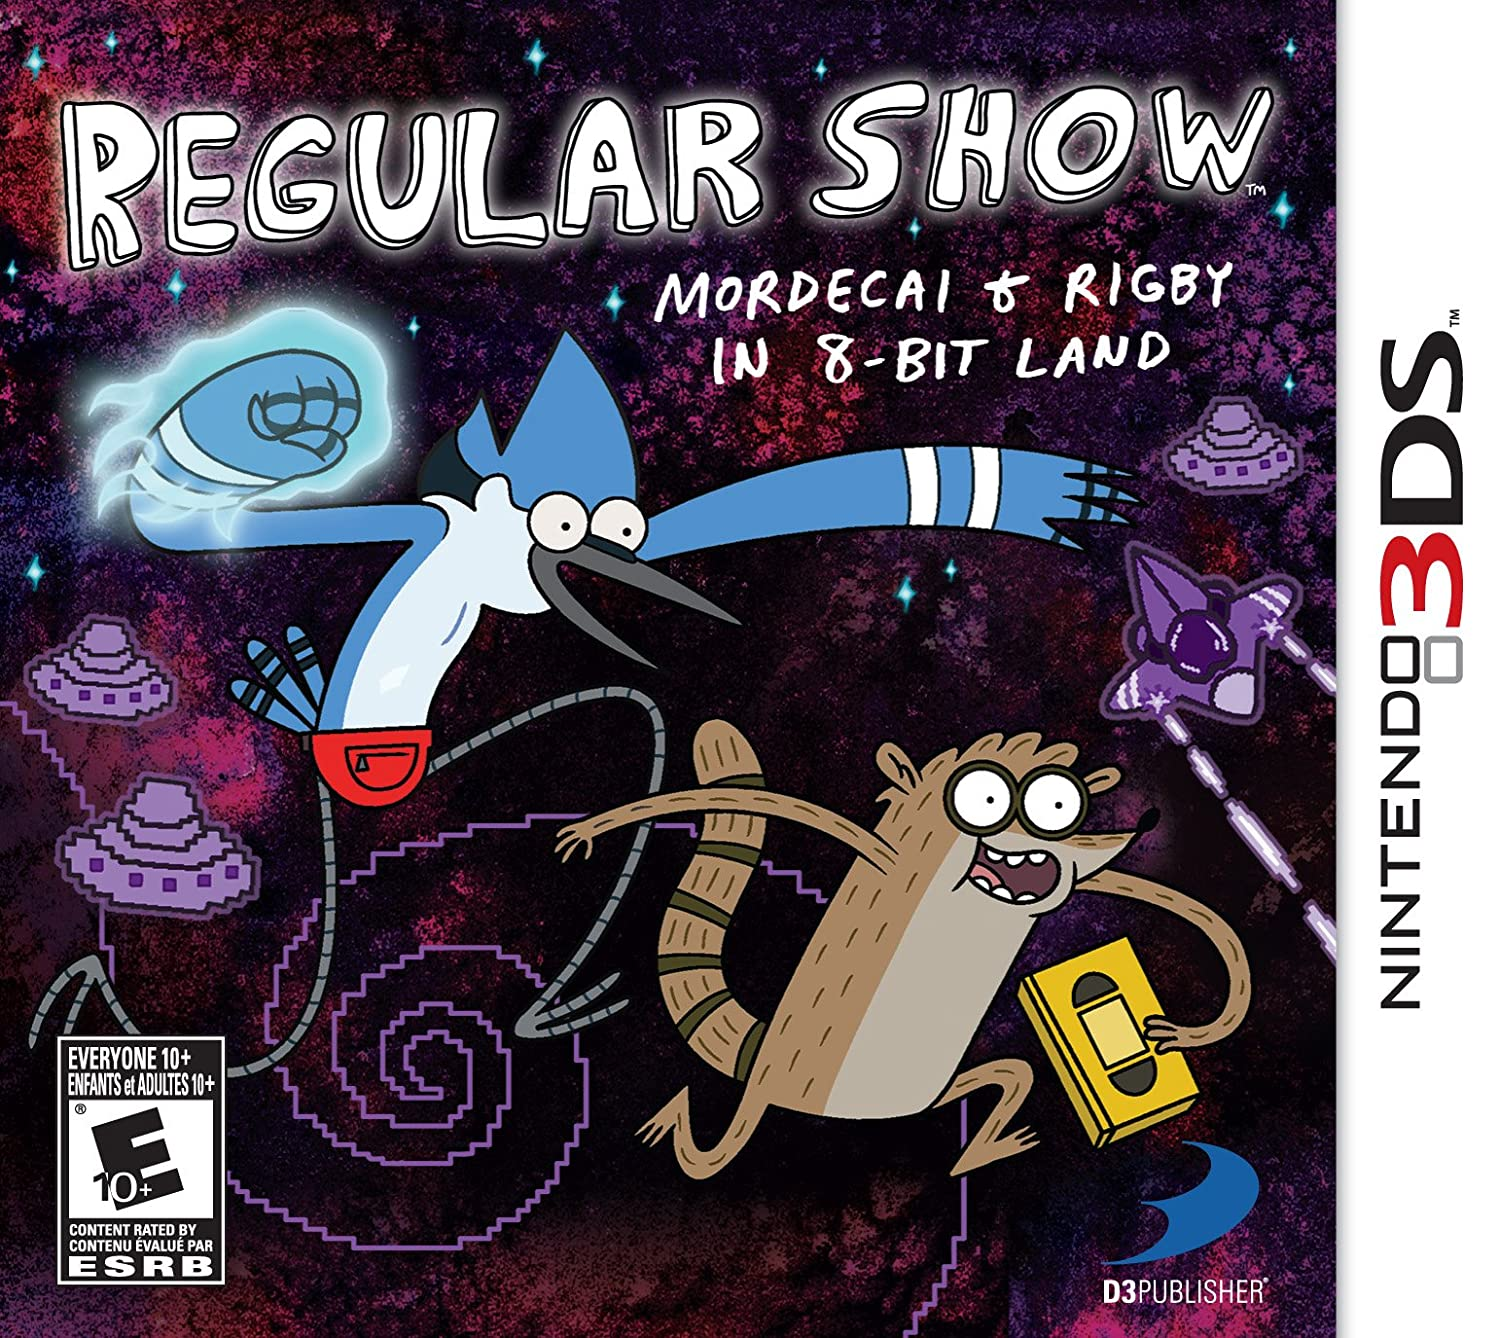 Regular Show: In stock Mordecai and Rigby in - Nintendo 3DS Super special price 8-bit Land